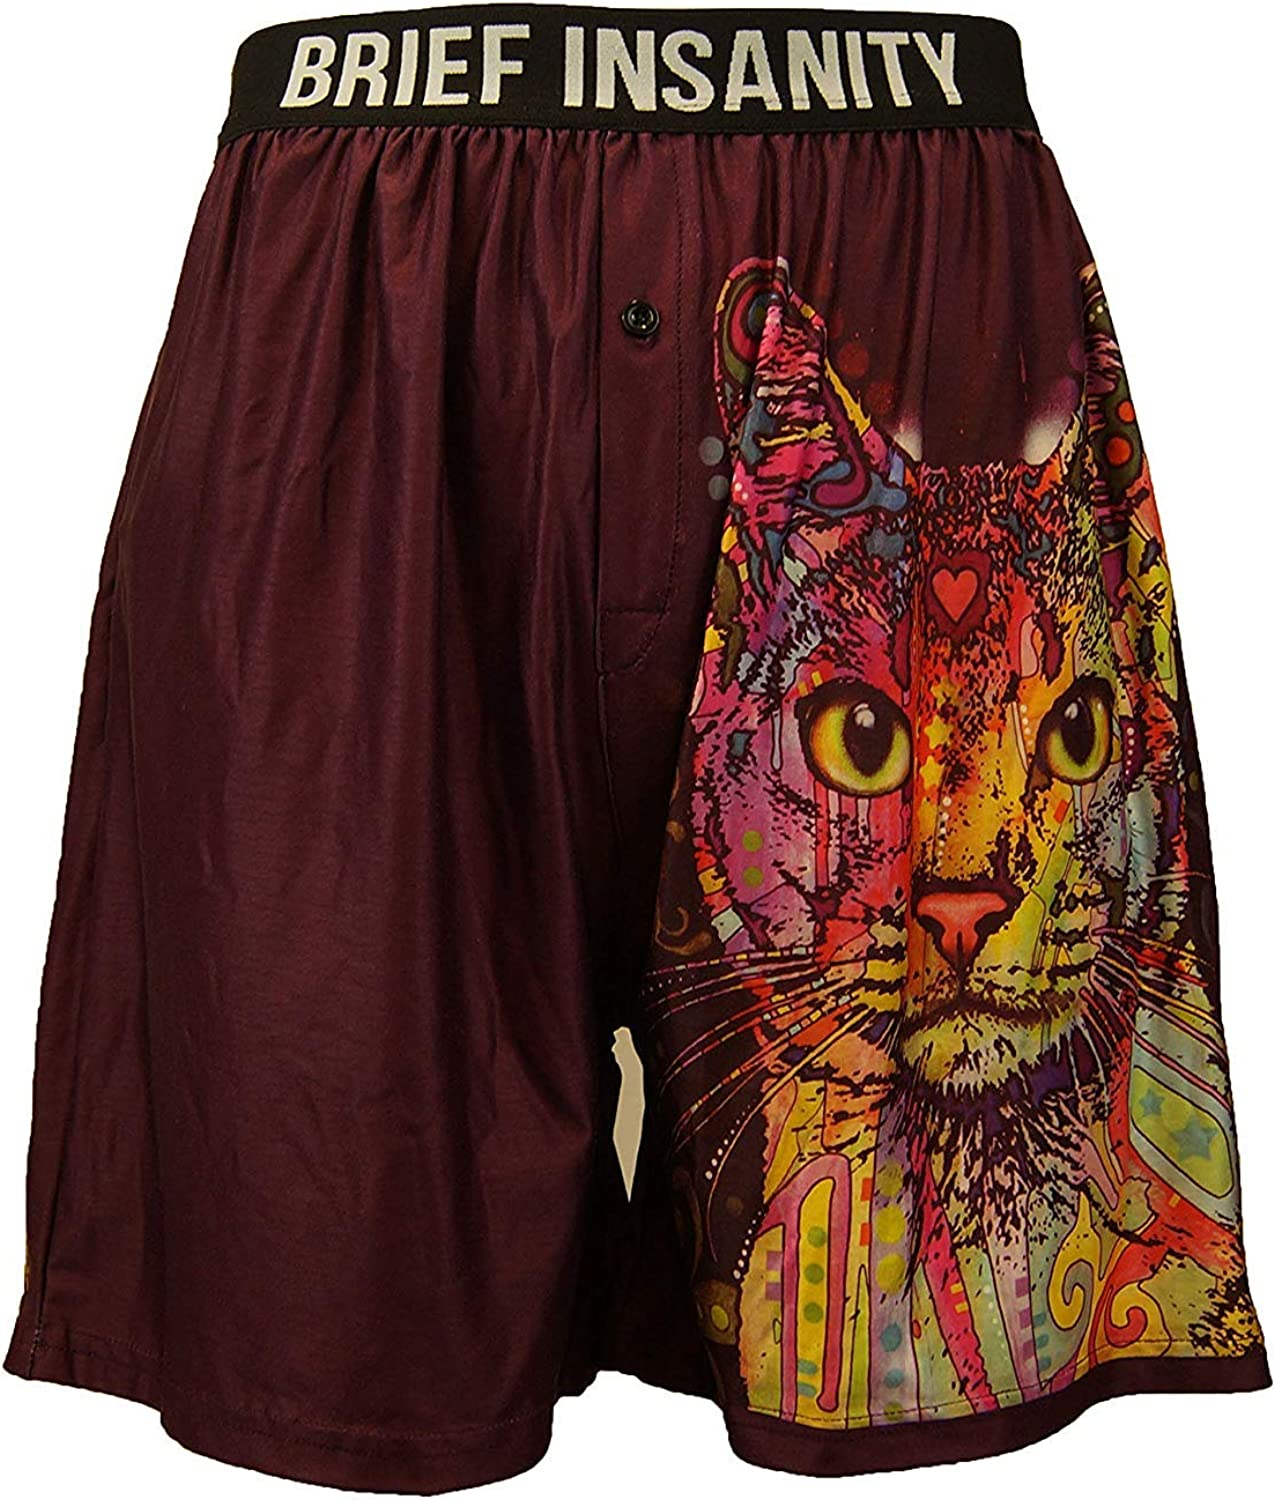 BRIEF INSANITY Boxer Briefs for Men and Women   Soft, Comfy Boxer Shorts - Animal Russo Cat Print Underwear